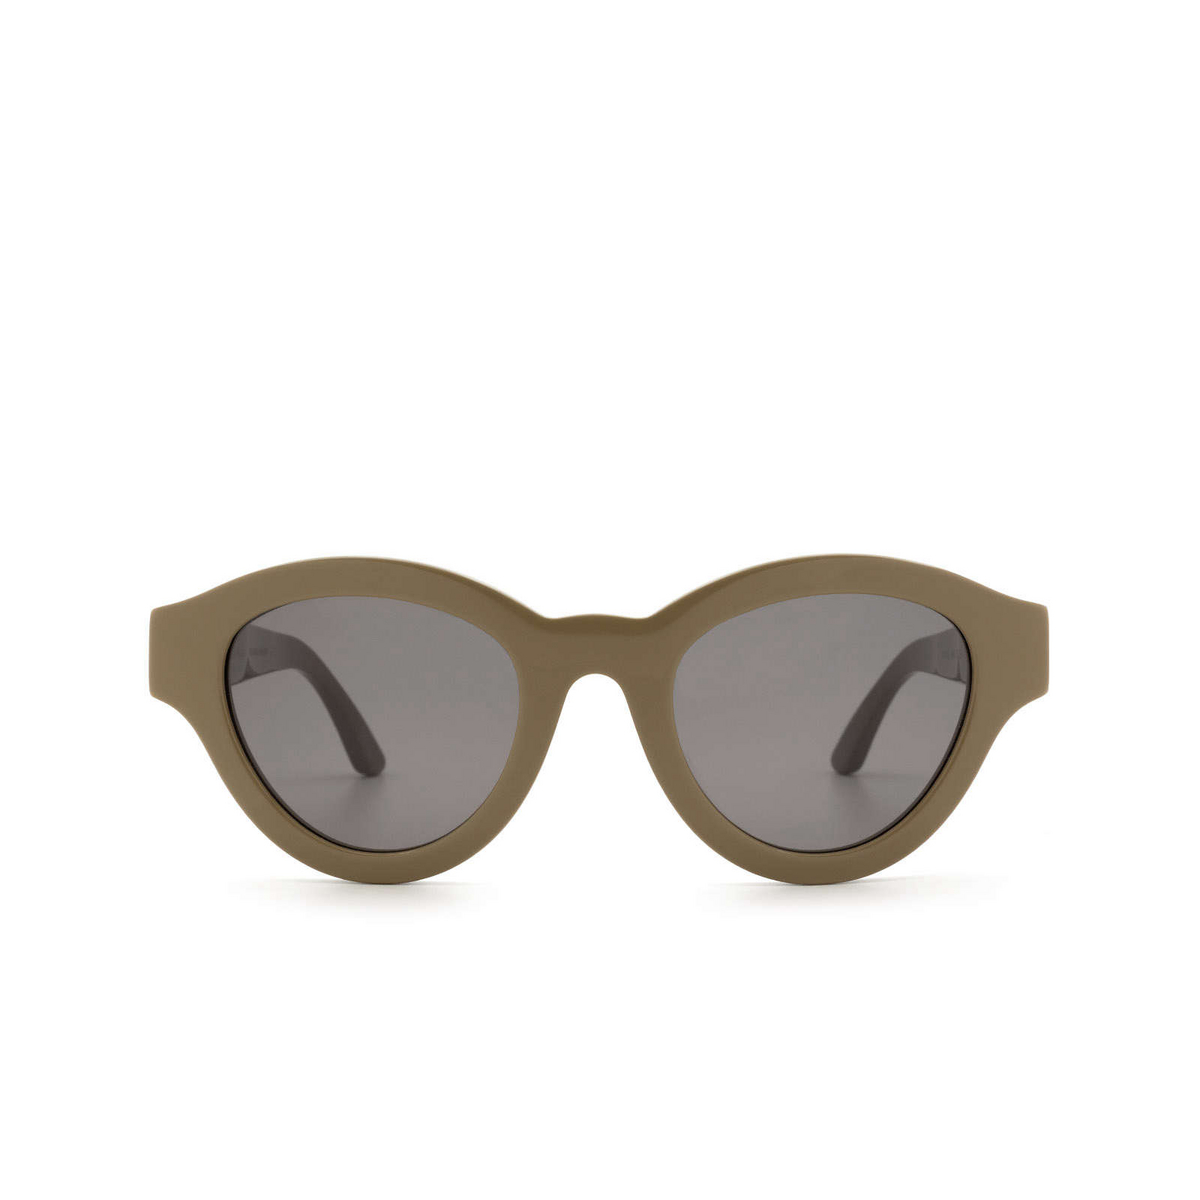 Huma® Cat-eye Sunglasses: Dug color Military 09 - front view.